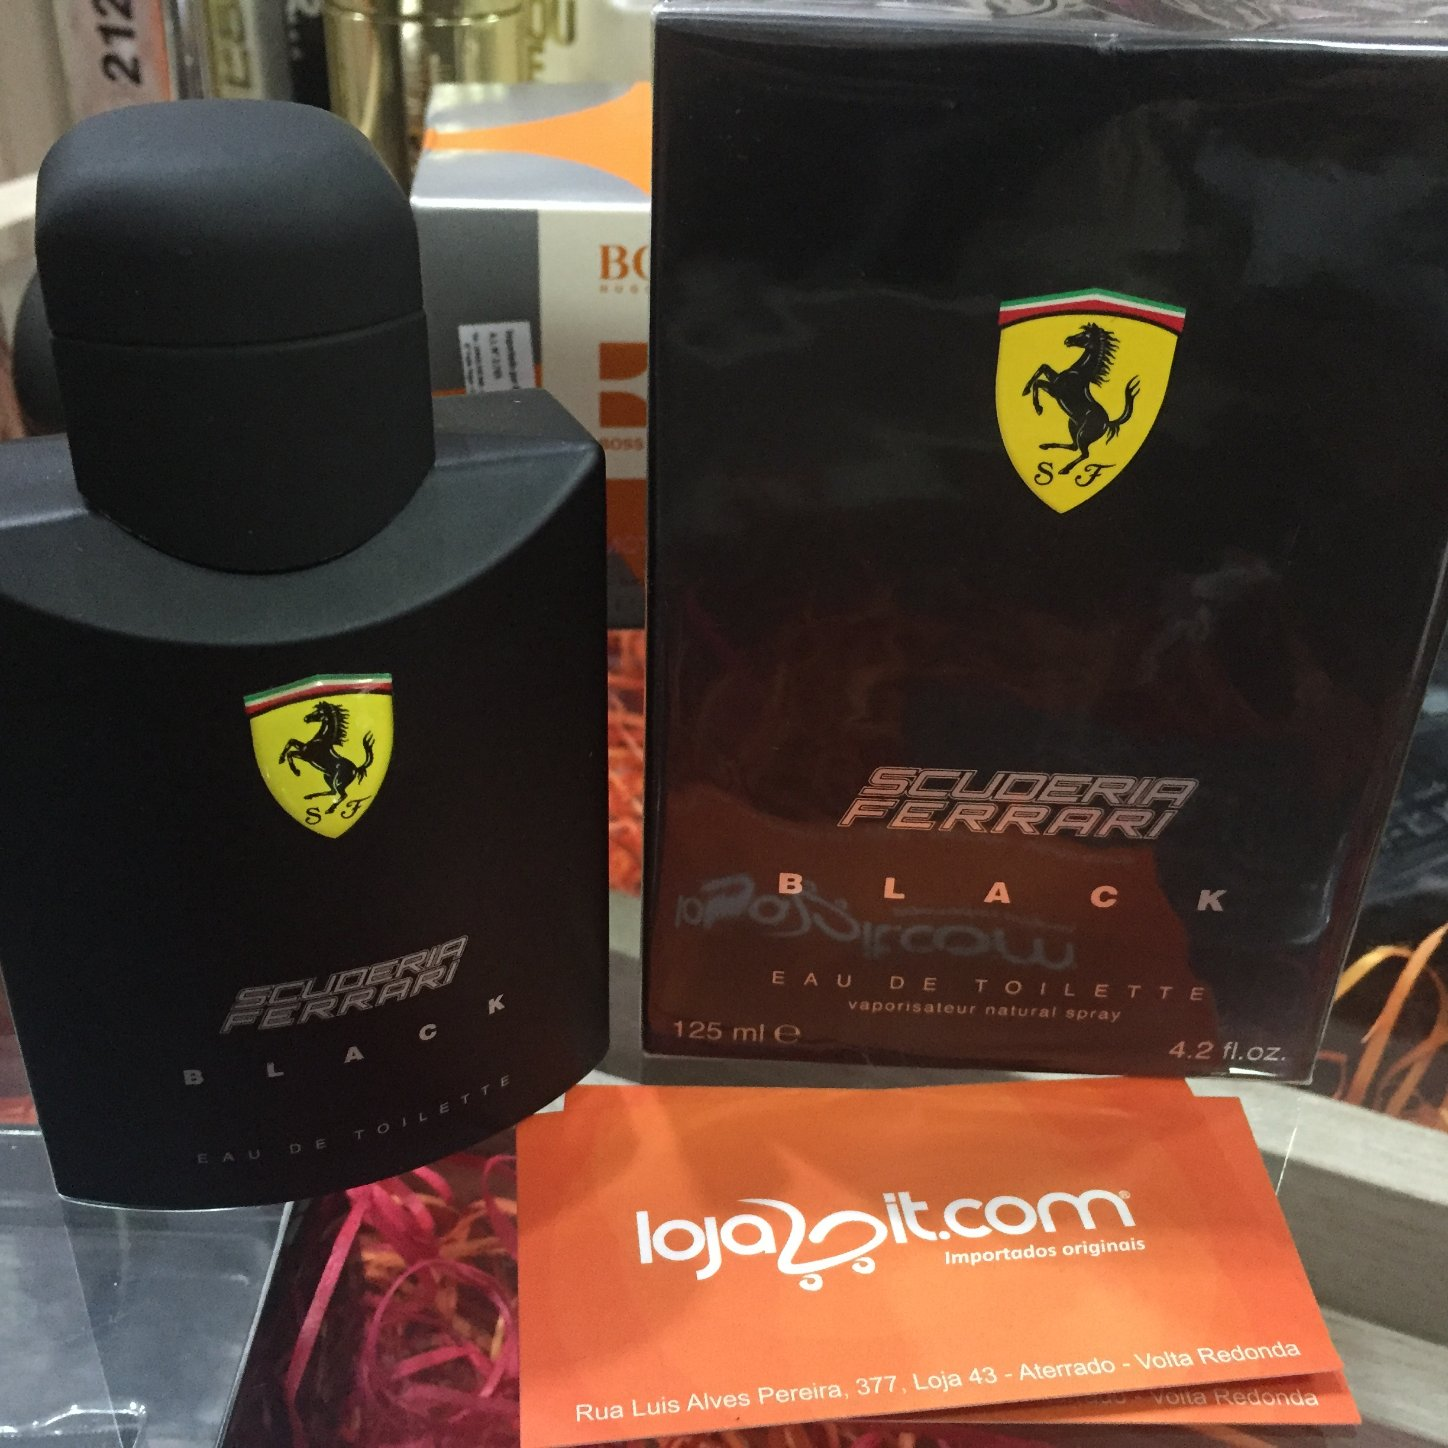 perfume ferrari black 125ml